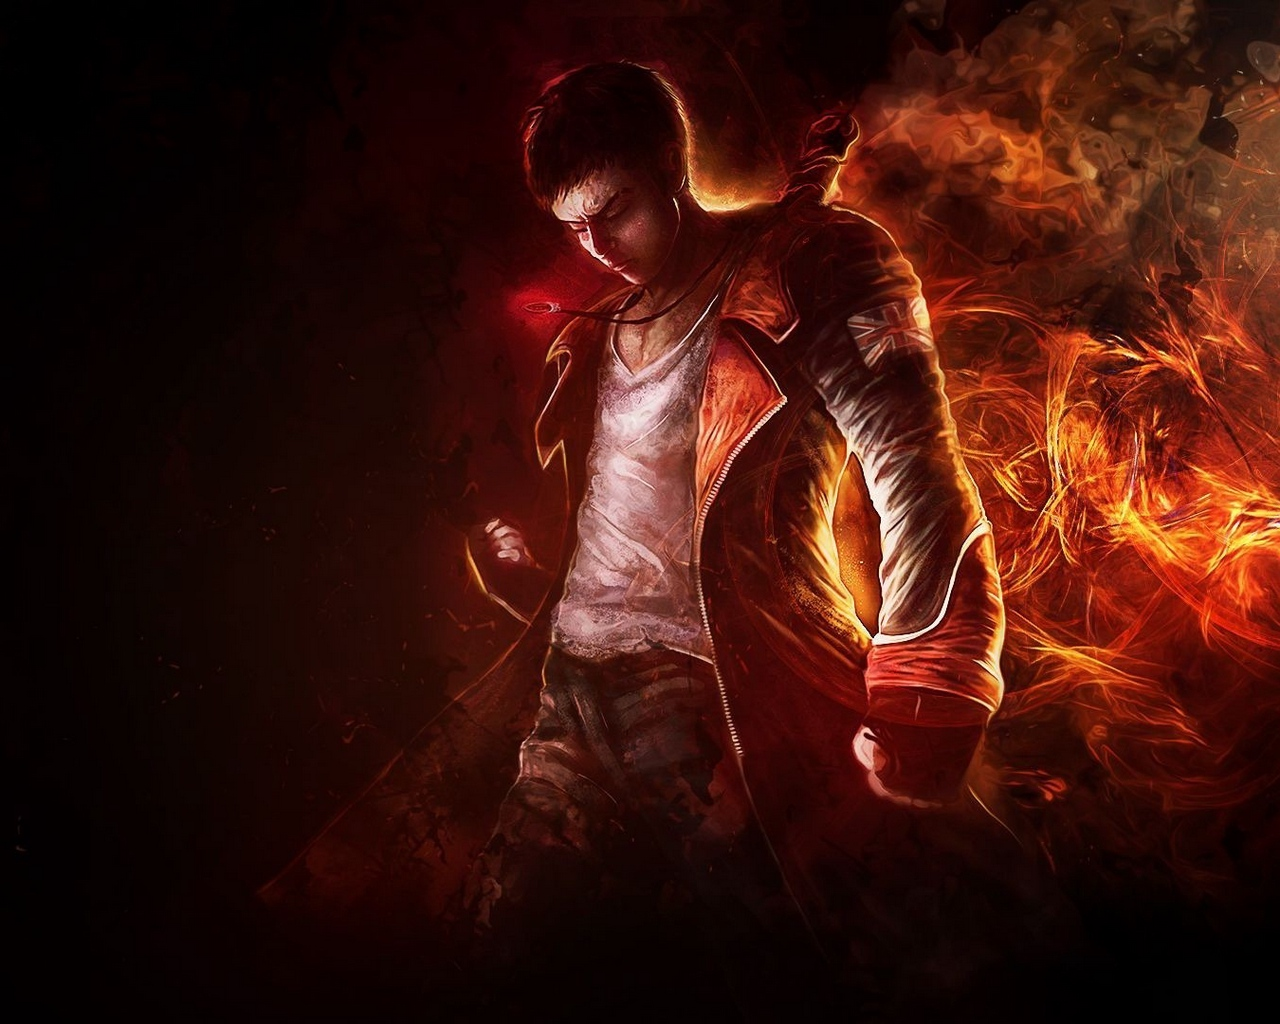 Wallpaper Devil May Cry 5 Dante Art Dmc Dante Devil May